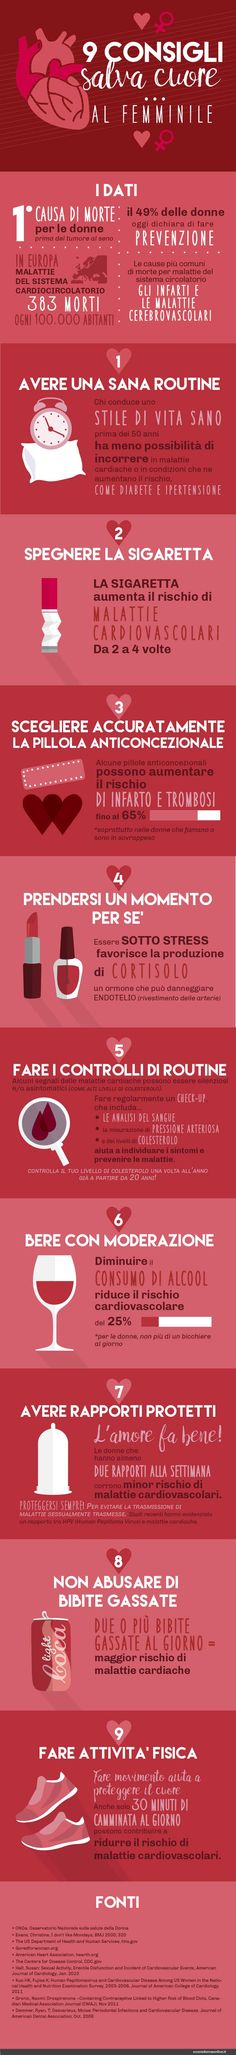 9 CONSIGLI SALVA CUORE AL FEMMINILE- esseredonnaonline.it- illustrated by Alice Kle Borghi kleland.com